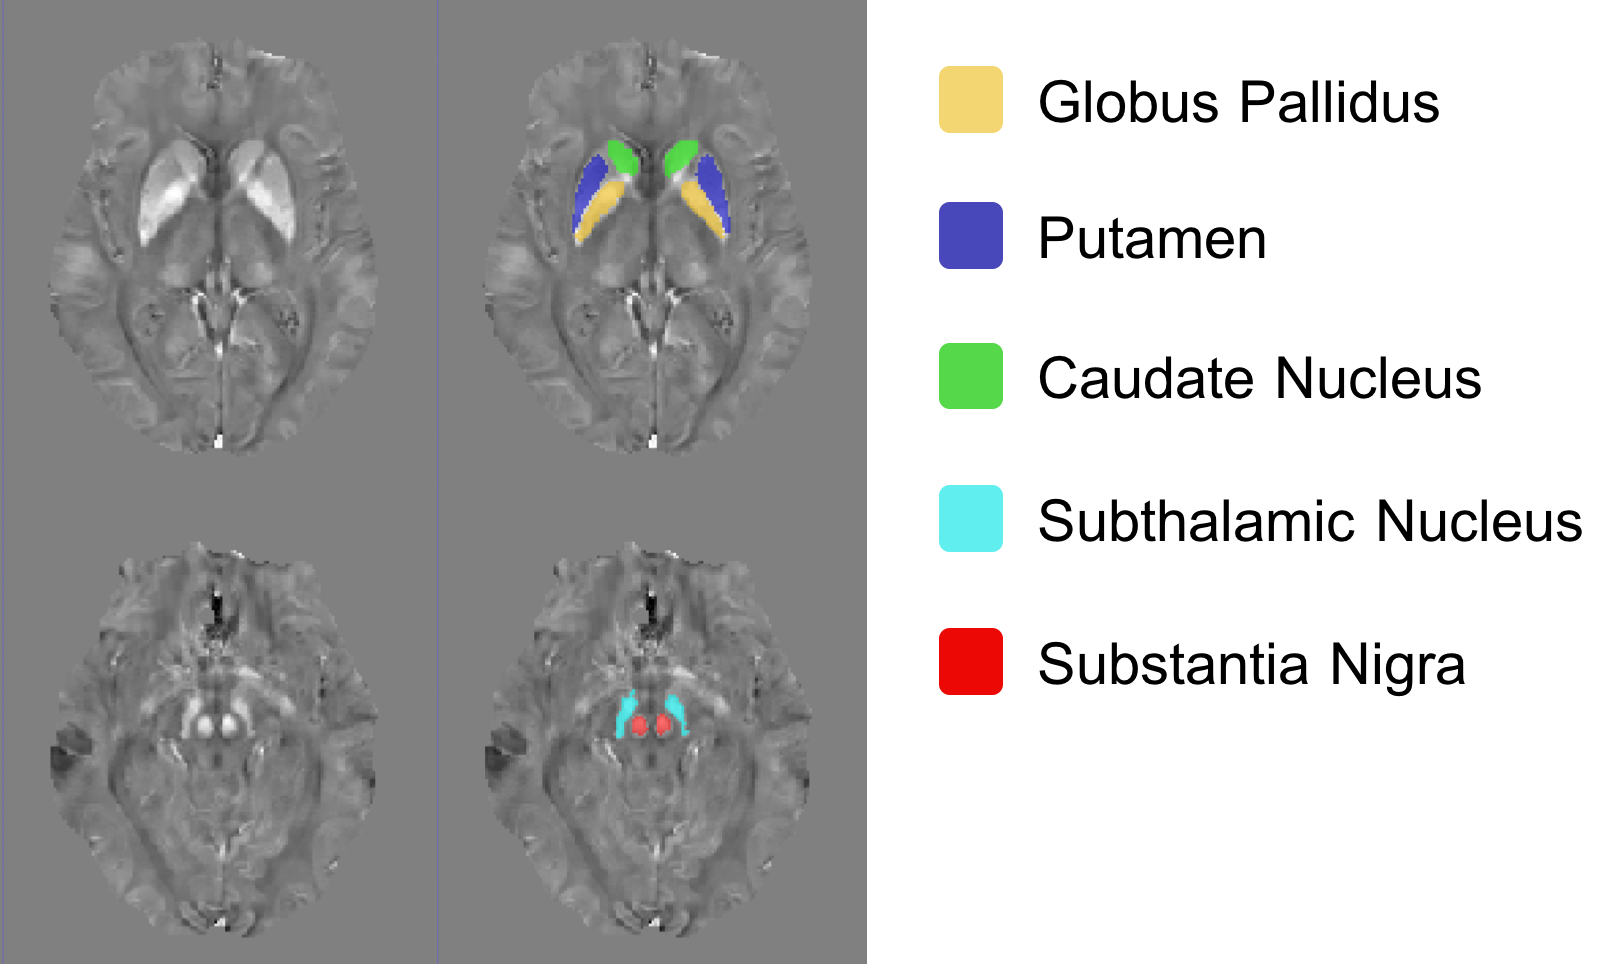 Deep Gray Matter (DGM) Segmentation using 3D Convolutional